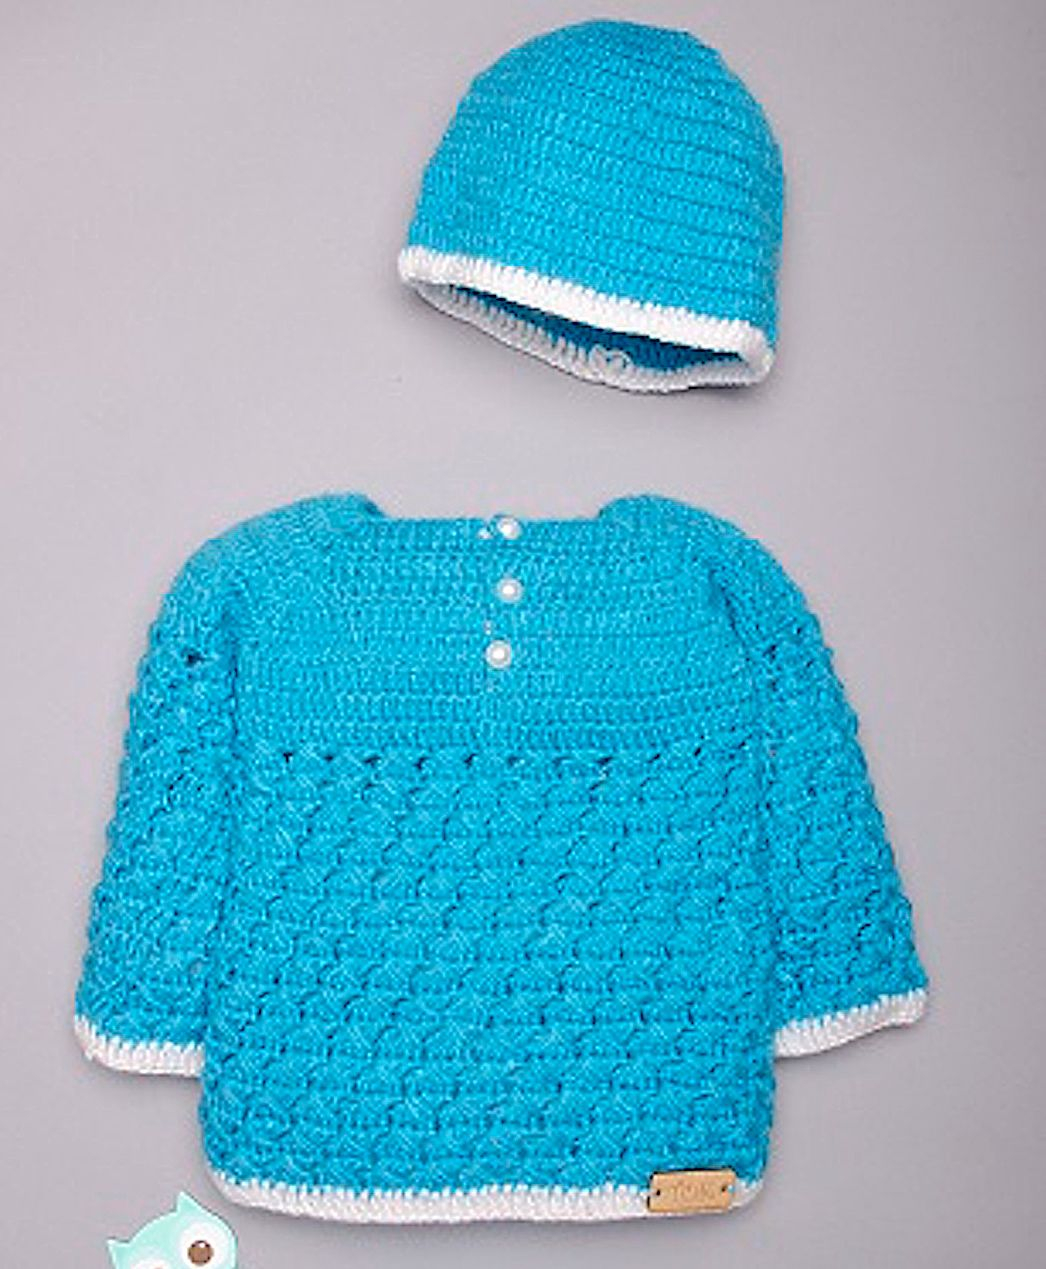 Knit Zig Zag Pattern Buy The Original Knit Zig Zag Pattern Crochet Full Sleeves Sweater With Cap Blue For Girls 12 24 Months Online In India Shop At Firstcry